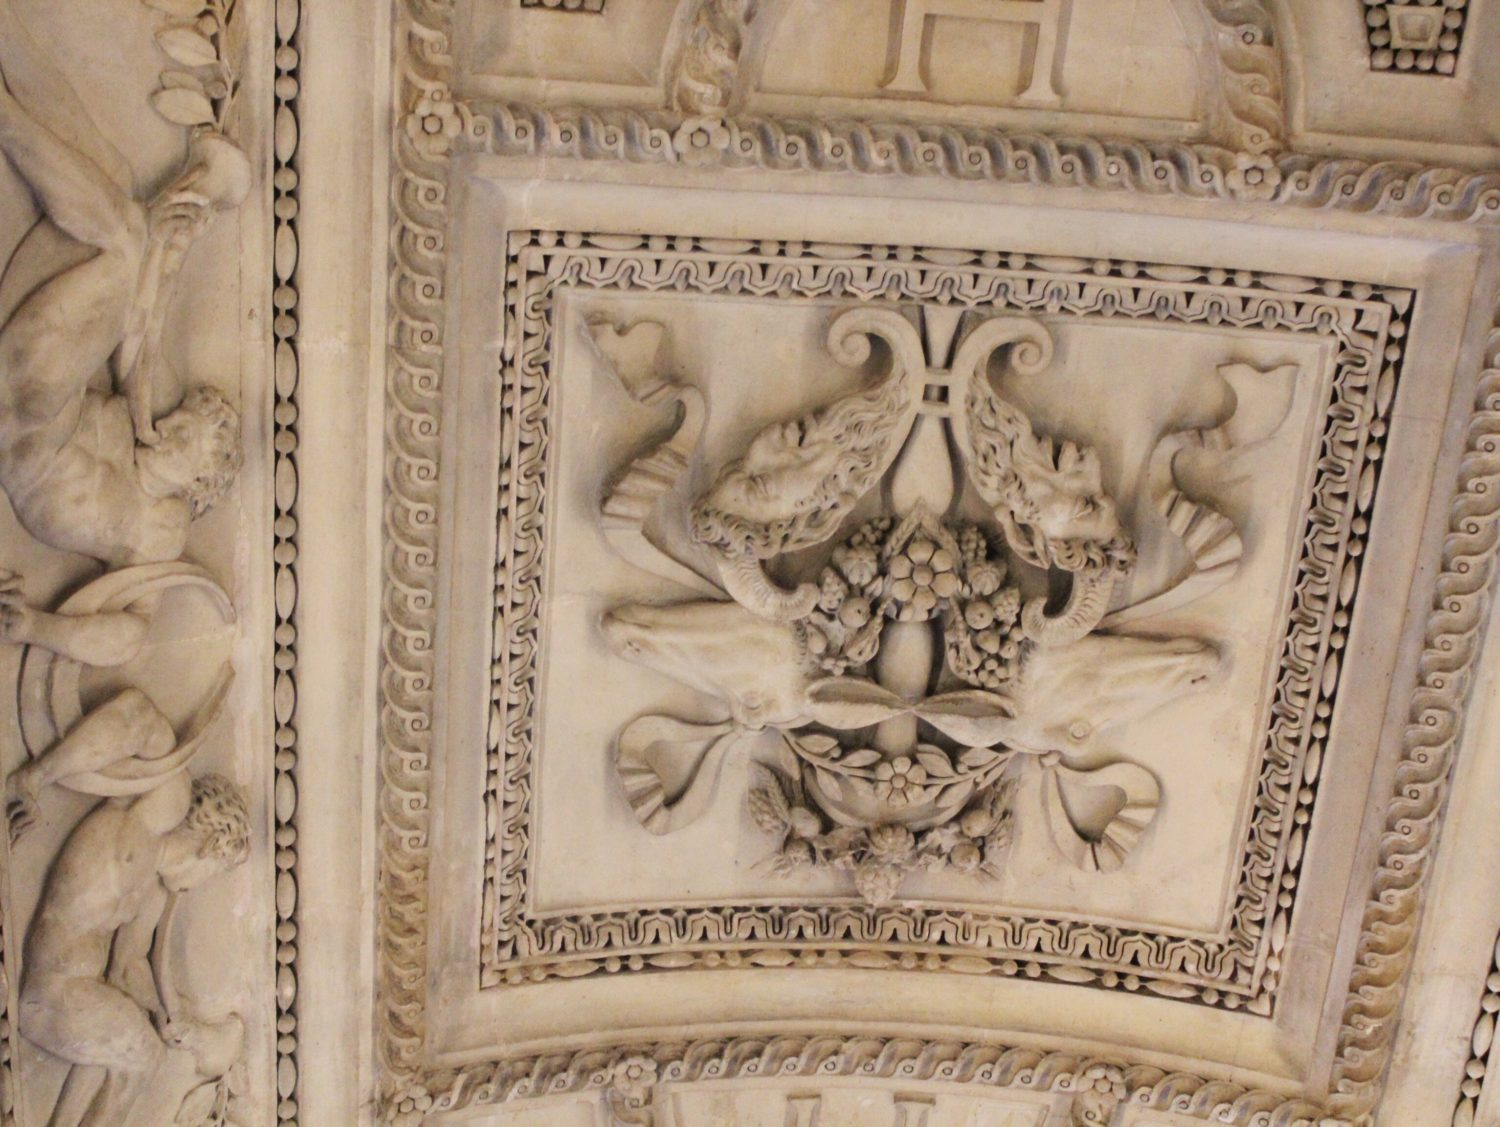 The Louvre Ceiling